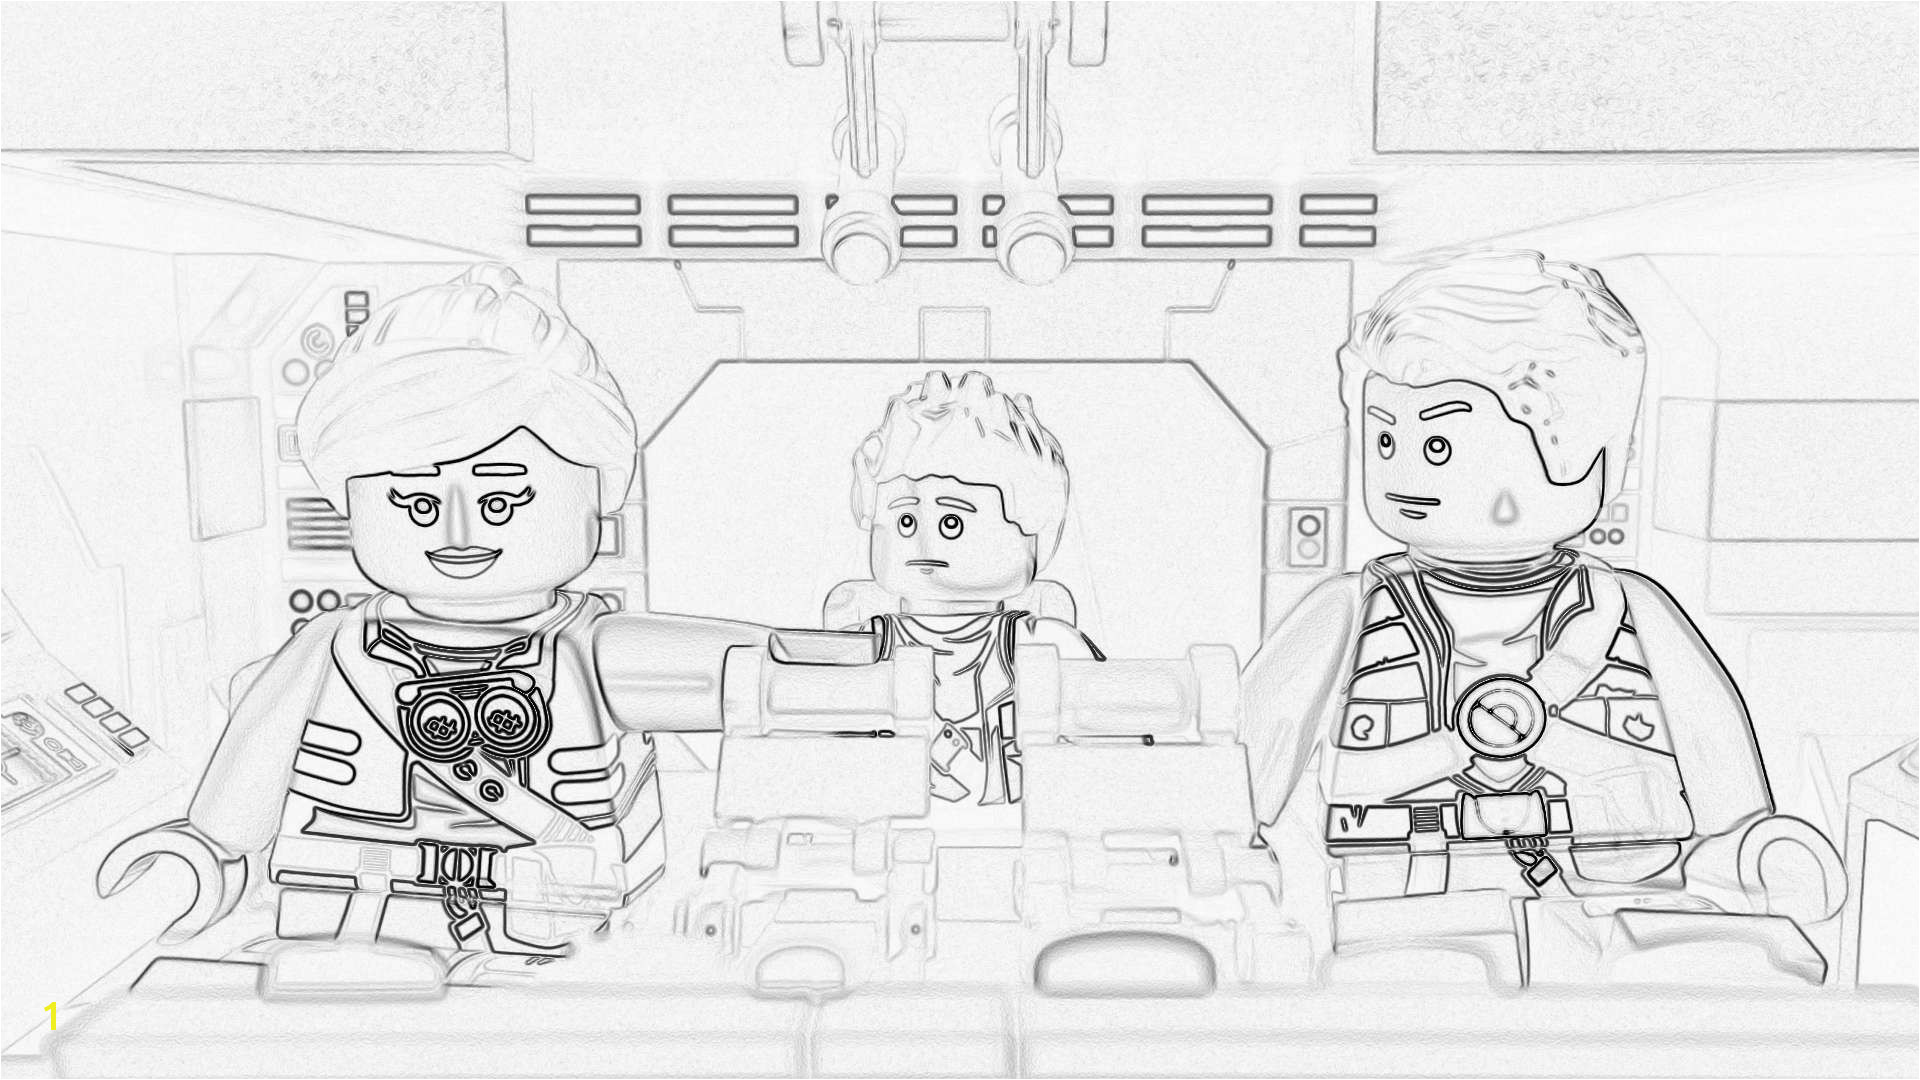 Ausmalbilder Lego Star Wars Inspirierend Lego Starwars Coloring Pages Christmas Coloring Pages Lego